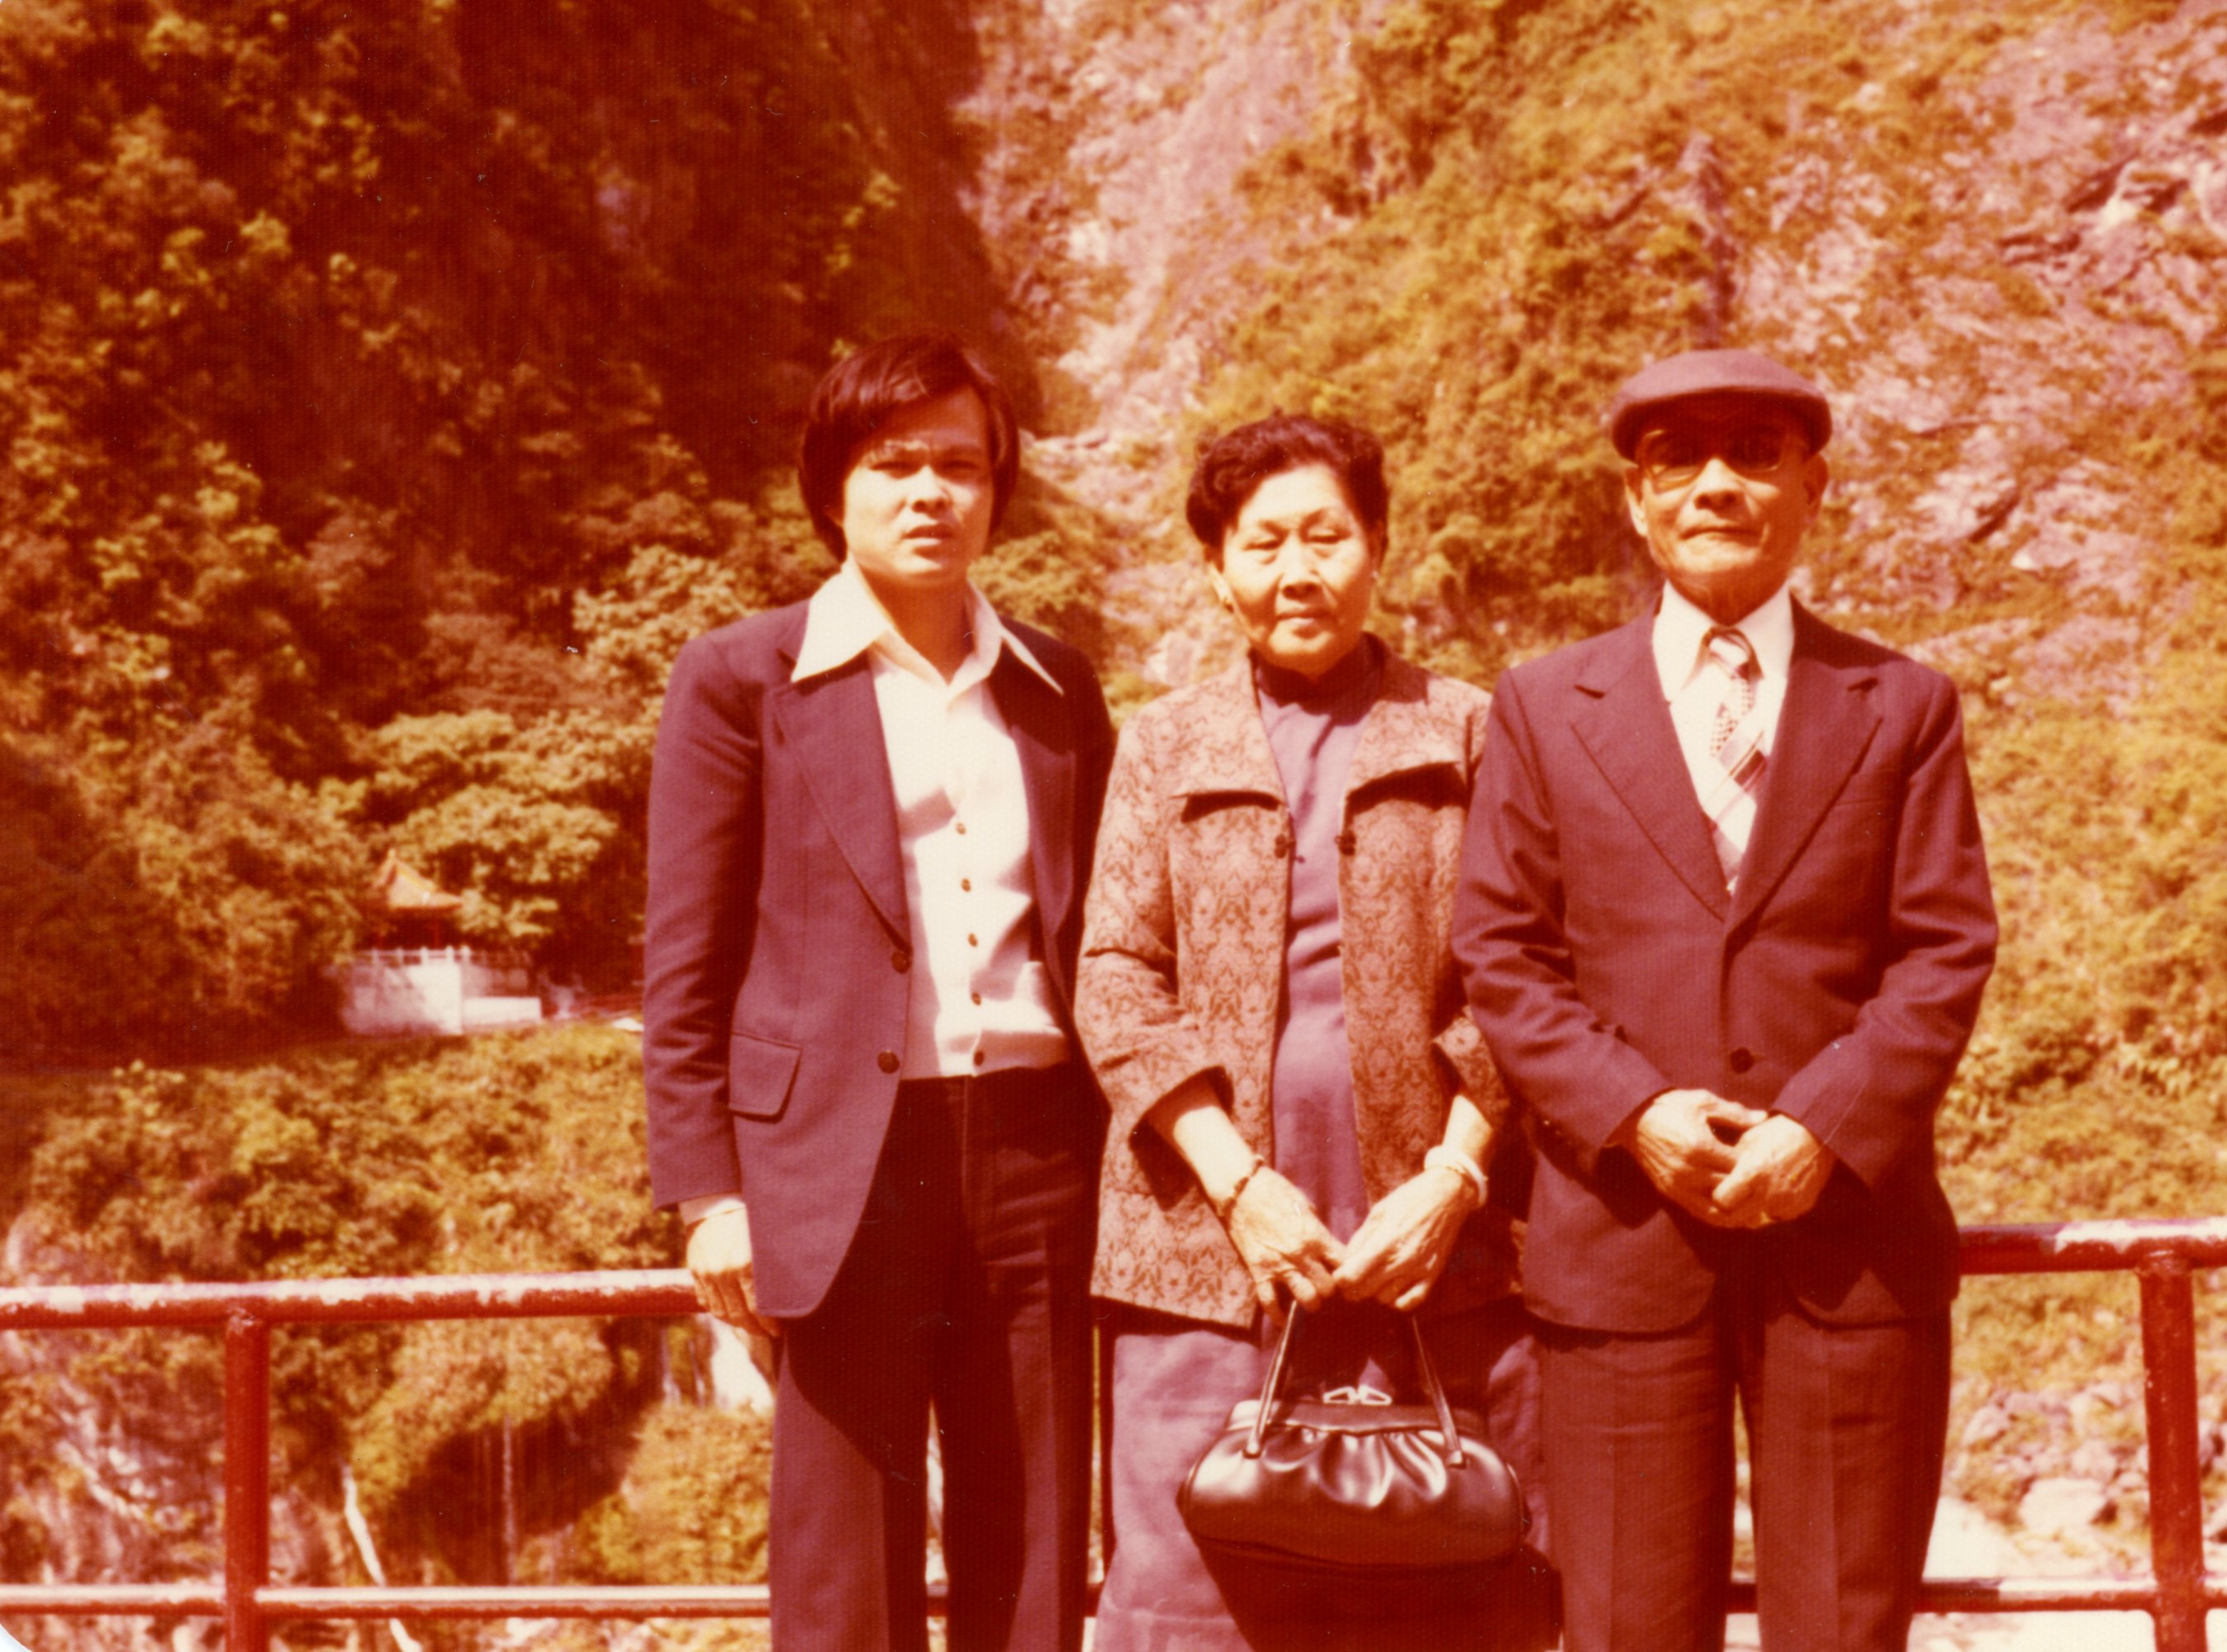 Ada's Dad, in the late 70s or early 80s, with his parents, wearing formalwear and standing on a bridge